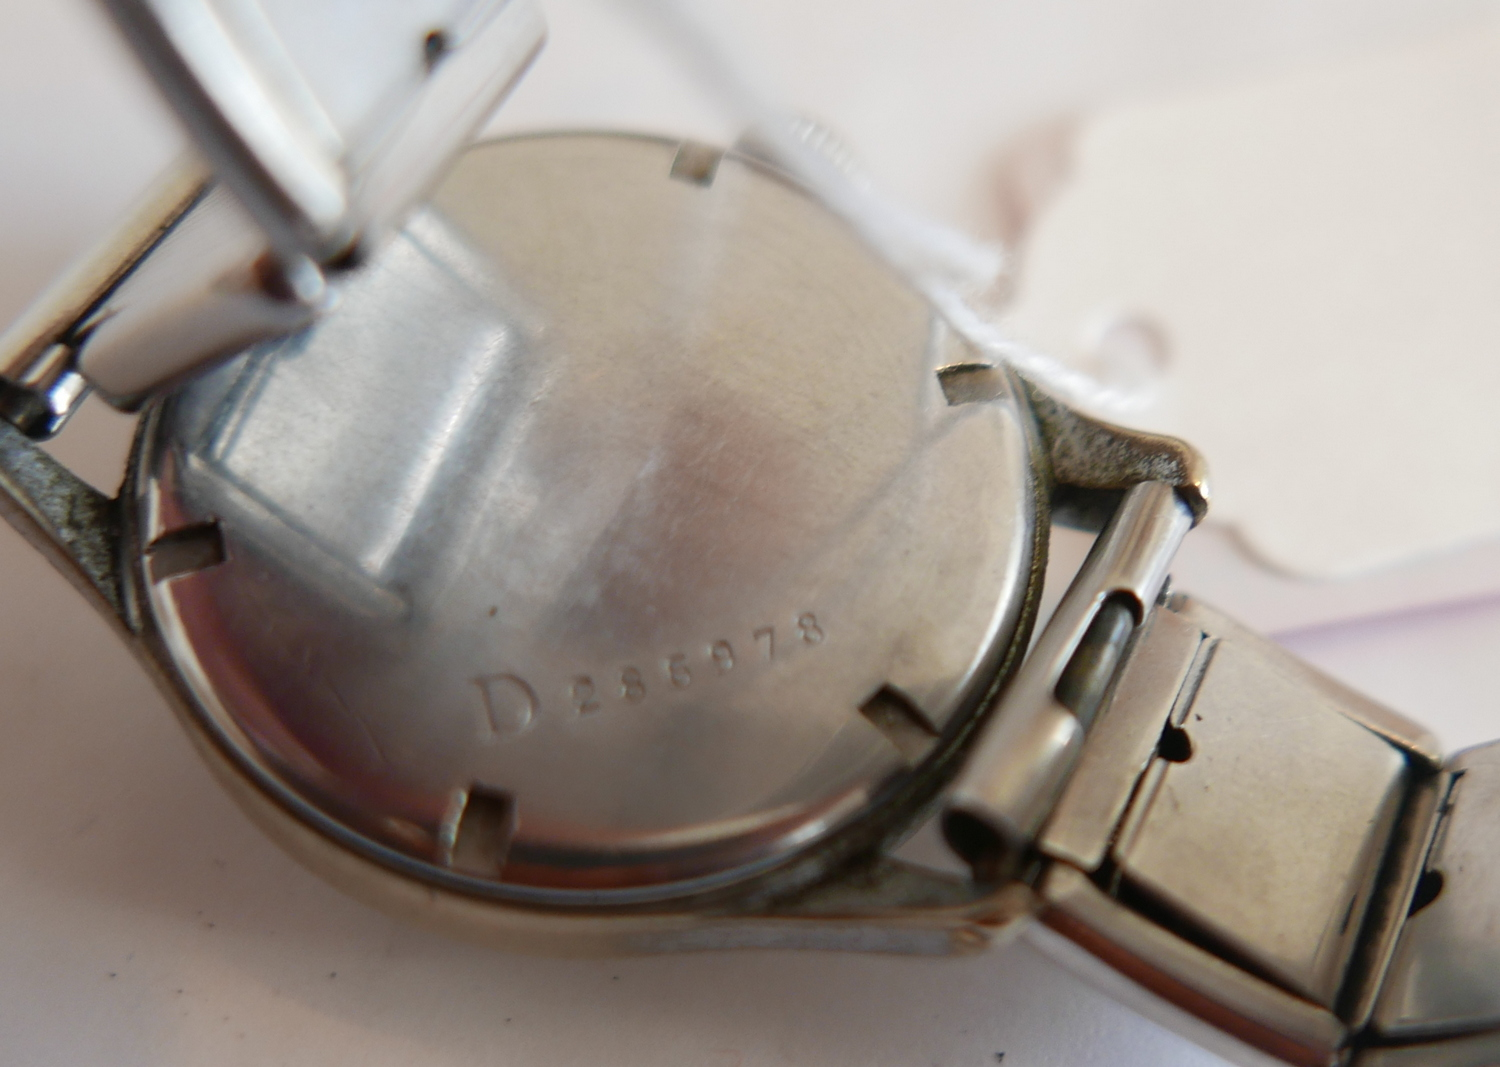 Lot 71 - Vintage Black Dial Siegerin Military Watch.